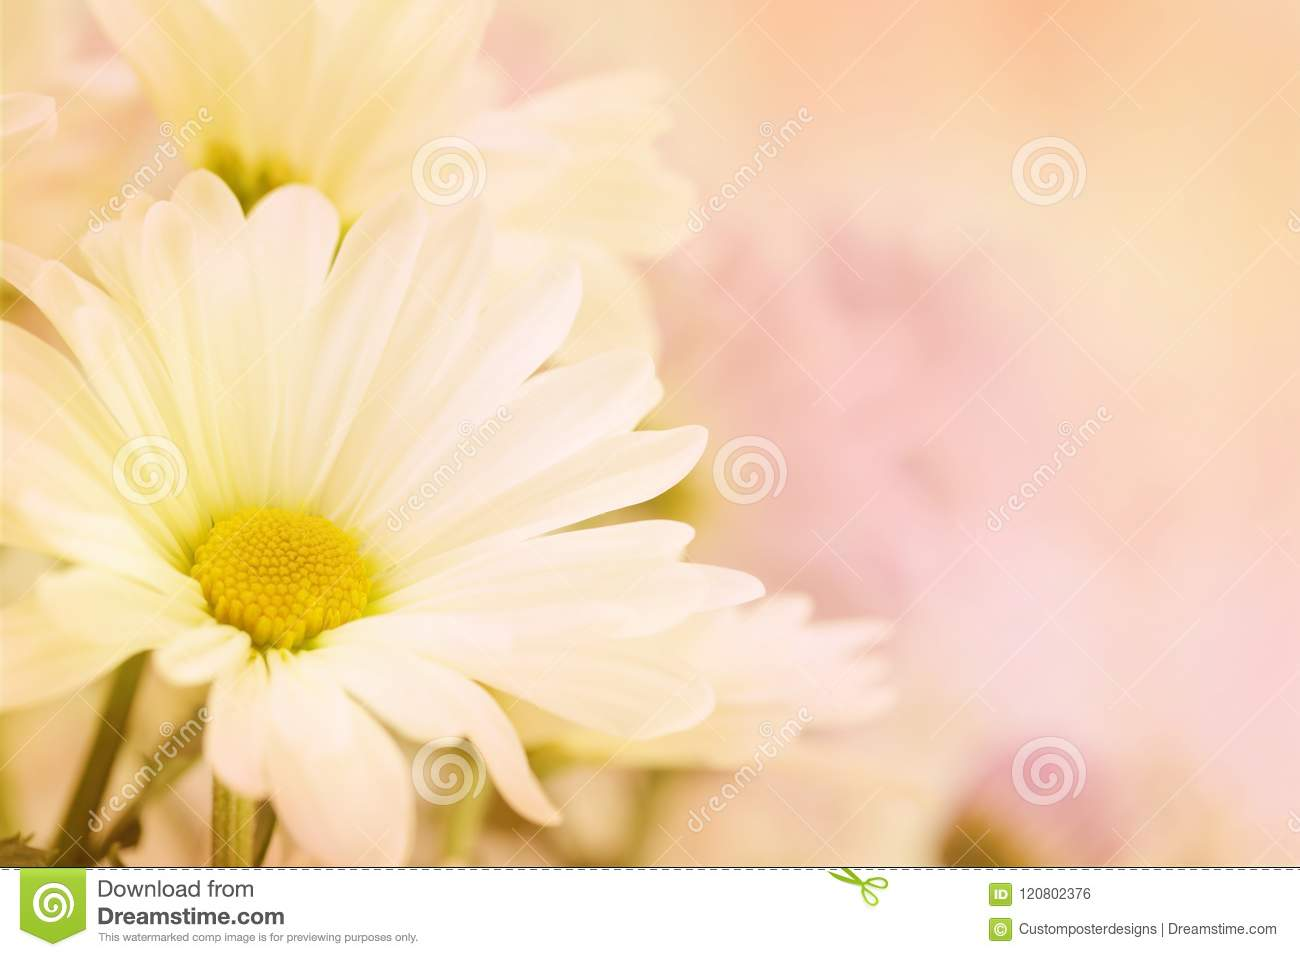 Download A Beautiful Soft White And Yellow Daisy With A Pink Blurred Background. Stock Photo - Image of colors, fantasy: 120802376